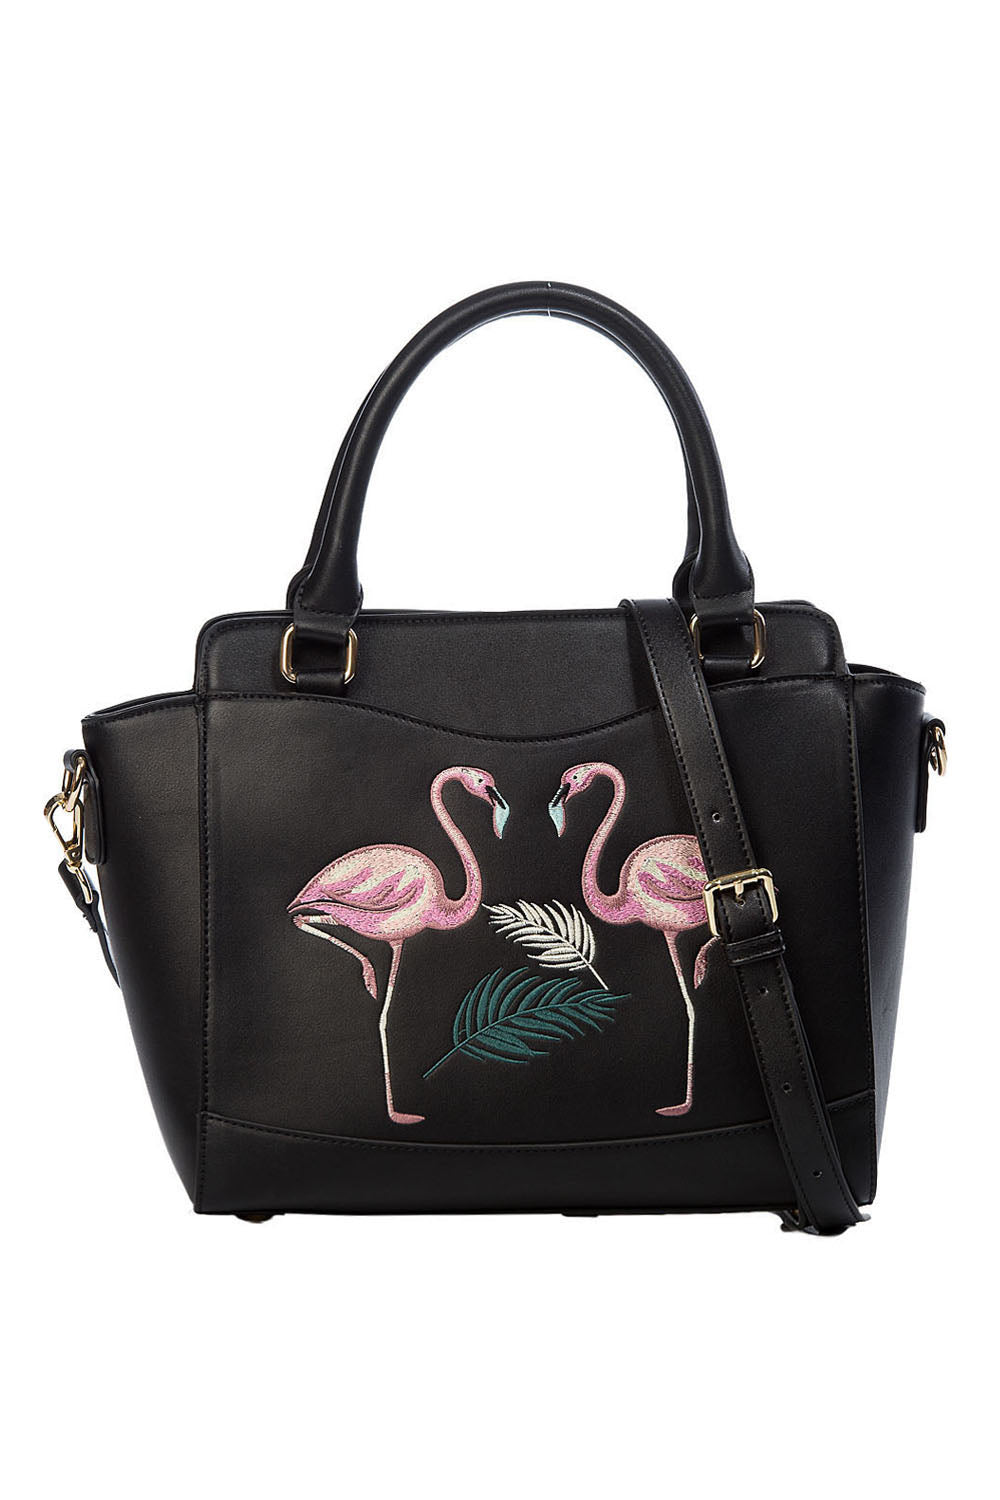 Pink Flamingo Embroidered Handbag in Black